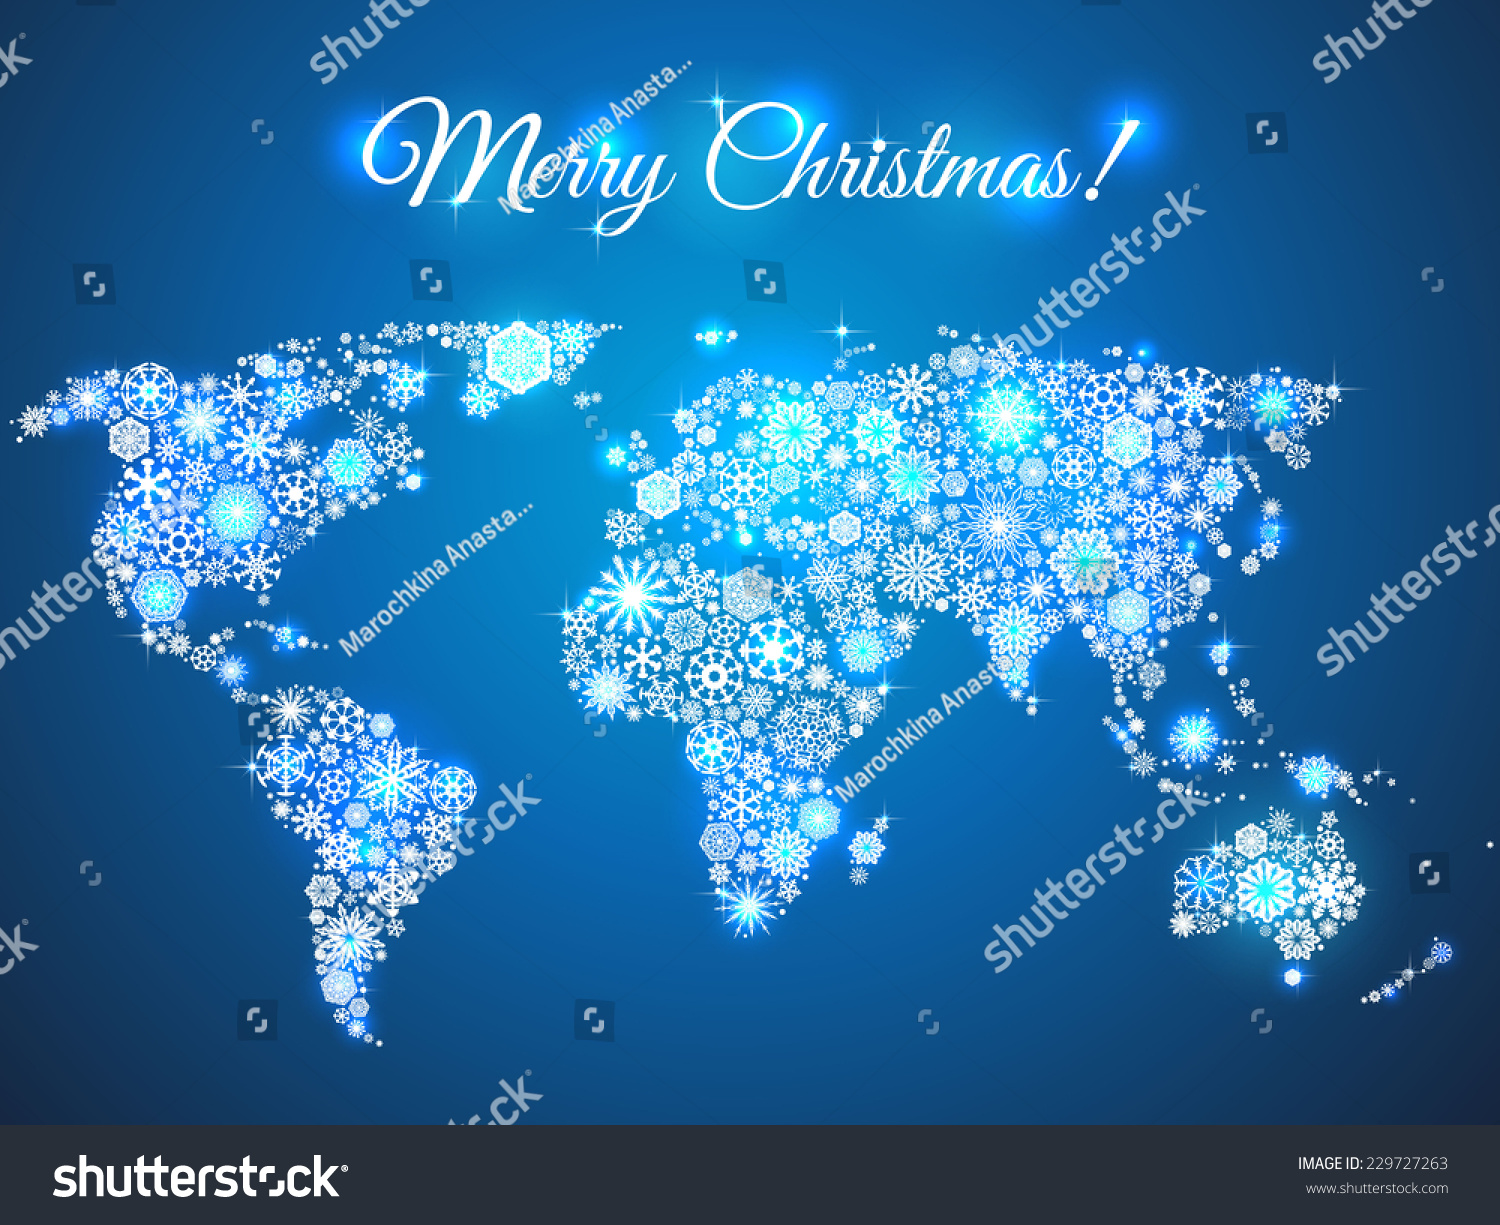 Christmas Background Snowflakes World Map For The New